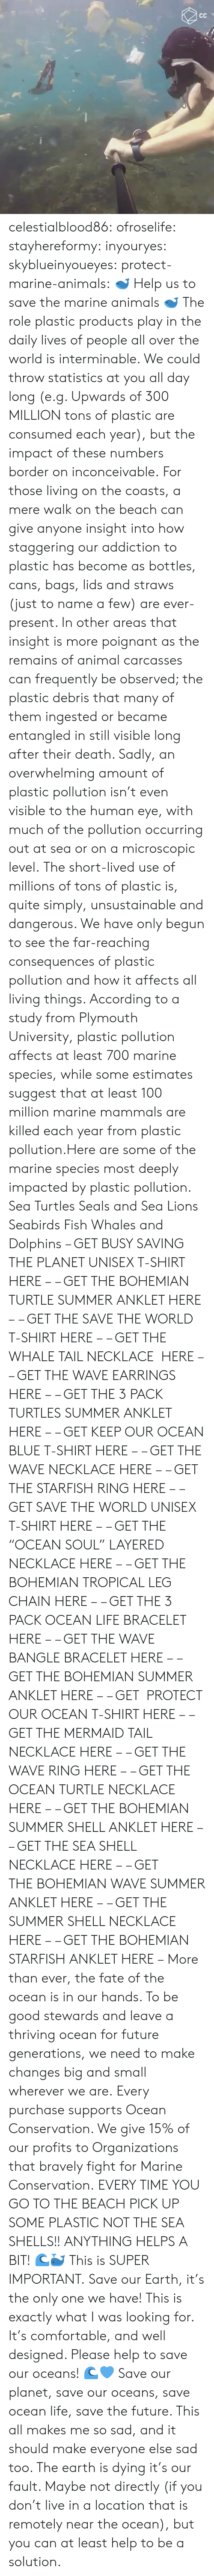 "Sea Shells: celestialblood86:  ofroselife: stayhereformy:  inyouryes:  skyblueinyoueyes:  protect-marine-animals:  🐋 Help us to save the marine animals 🐋 The role plastic products play in the daily lives of people all over the world is interminable. We could throw statistics at you all day long (e.g. Upwards of 300 MILLION tons of plastic are consumed each year), but the impact of these numbers border on inconceivable. For those living on the coasts, a mere walk on the beach can give anyone insight into how staggering our addiction to plastic has become as bottles, cans, bags, lids and straws (just to name a few) are ever-present. In other areas that insight is more poignant as the remains of animal carcasses can frequently be observed; the plastic debris that many of them ingested or became entangled in still visible long after their death. Sadly, an overwhelming amount of plastic pollution isn't even visible to the human eye, with much of the pollution occurring out at sea or on a microscopic level. The short-lived use of millions of tons of plastic is, quite simply, unsustainable and dangerous. We have only begun to see the far-reaching consequences of plastic pollution and how it affects all living things. According to a study from Plymouth University, plastic pollution affects at least 700 marine species, while some estimates suggest that at least 100 million marine mammals are killed each year from plastic pollution.Here are some of the marine species most deeply impacted by plastic pollution. Sea Turtles Seals and Sea Lions Seabirds Fish Whales and Dolphins – GET BUSY SAVING THE PLANET UNISEX T-SHIRT HERE – – GET THE BOHEMIAN TURTLE SUMMER ANKLET HERE – – GET THE SAVE THE WORLD T-SHIRT HERE – – GET THE WHALE TAIL NECKLACE  HERE – – GET THE WAVE EARRINGS HERE – – GET THE 3 PACK TURTLES SUMMER ANKLET HERE – – GET KEEP OUR OCEAN BLUE T-SHIRT HERE – – GET THE WAVE NECKLACE HERE – – GET THE STARFISH RING HERE – – GET SAVE THE WORLD UNISEX T-SHIRT HERE – – GET THE ""OCEAN SOUL"" LAYERED NECKLACE HERE – – GET THE BOHEMIAN TROPICAL LEG CHAIN HERE – – GET THE 3 PACK OCEAN LIFE BRACELET HERE – – GET THE WAVE BANGLE BRACELET HERE – – GET THE BOHEMIAN SUMMER ANKLET HERE – – GET  PROTECT OUR OCEAN T-SHIRT HERE – – GET THE MERMAID TAIL NECKLACE HERE – – GET THE WAVE RING HERE – – GET THE OCEAN TURTLE NECKLACE HERE – – GET THE BOHEMIAN SUMMER SHELL ANKLET HERE – – GET THE SEA SHELL NECKLACE HERE – – GET THE BOHEMIAN WAVE SUMMER ANKLET HERE – – GET THE SUMMER SHELL NECKLACE HERE – – GET THE BOHEMIAN STARFISH ANKLET HERE – More than ever, the fate of the ocean is in our hands. To be good stewards and leave a thriving ocean for future generations, we need to make changes big and small wherever we are. Every purchase supports Ocean Conservation. We give 15% of our profits to Organizations that bravely fight for Marine Conservation.  EVERY TIME YOU GO TO THE BEACH PICK UP SOME PLASTIC NOT THE SEA SHELLS!! ANYTHING HELPS A BIT! 🌊🐳  This is SUPER IMPORTANT.  Save our Earth, it's the only one we have!  This is exactly what I was looking for. It's comfortable, and well designed. Please help to save our oceans! 🌊💙  Save our planet, save our oceans, save ocean life, save the future. This all makes me so sad, and it should make everyone else sad too. The earth is dying it's our fault. Maybe not directly (if you don't live in a location that is remotely near the ocean), but you can at least help to be a solution."